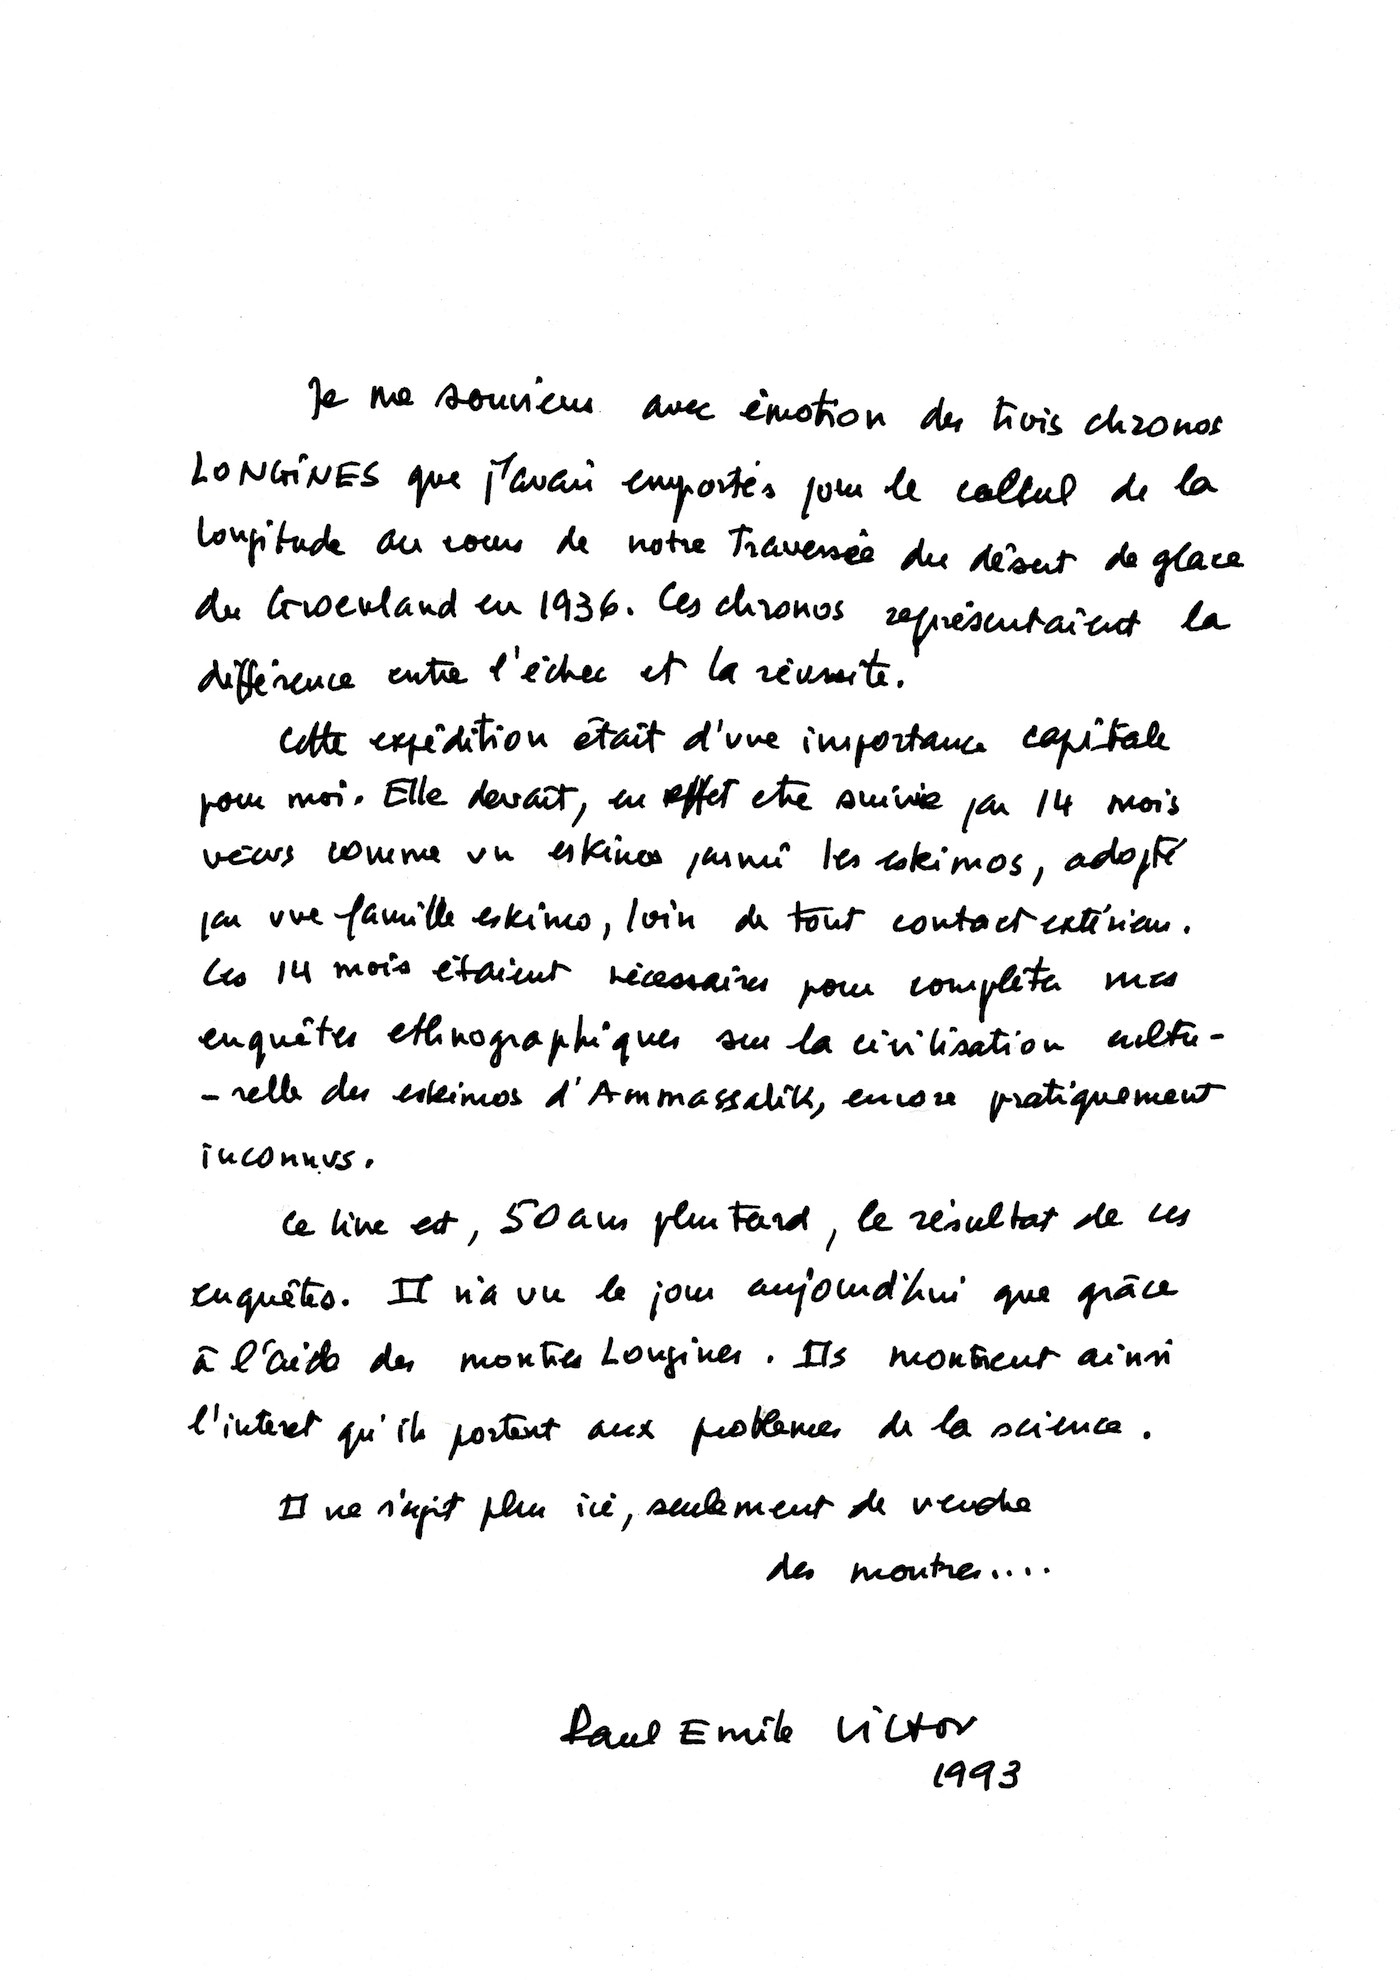 Letter from Paul-Emile Victor to Longines - longines spirit collection 2020 - 1